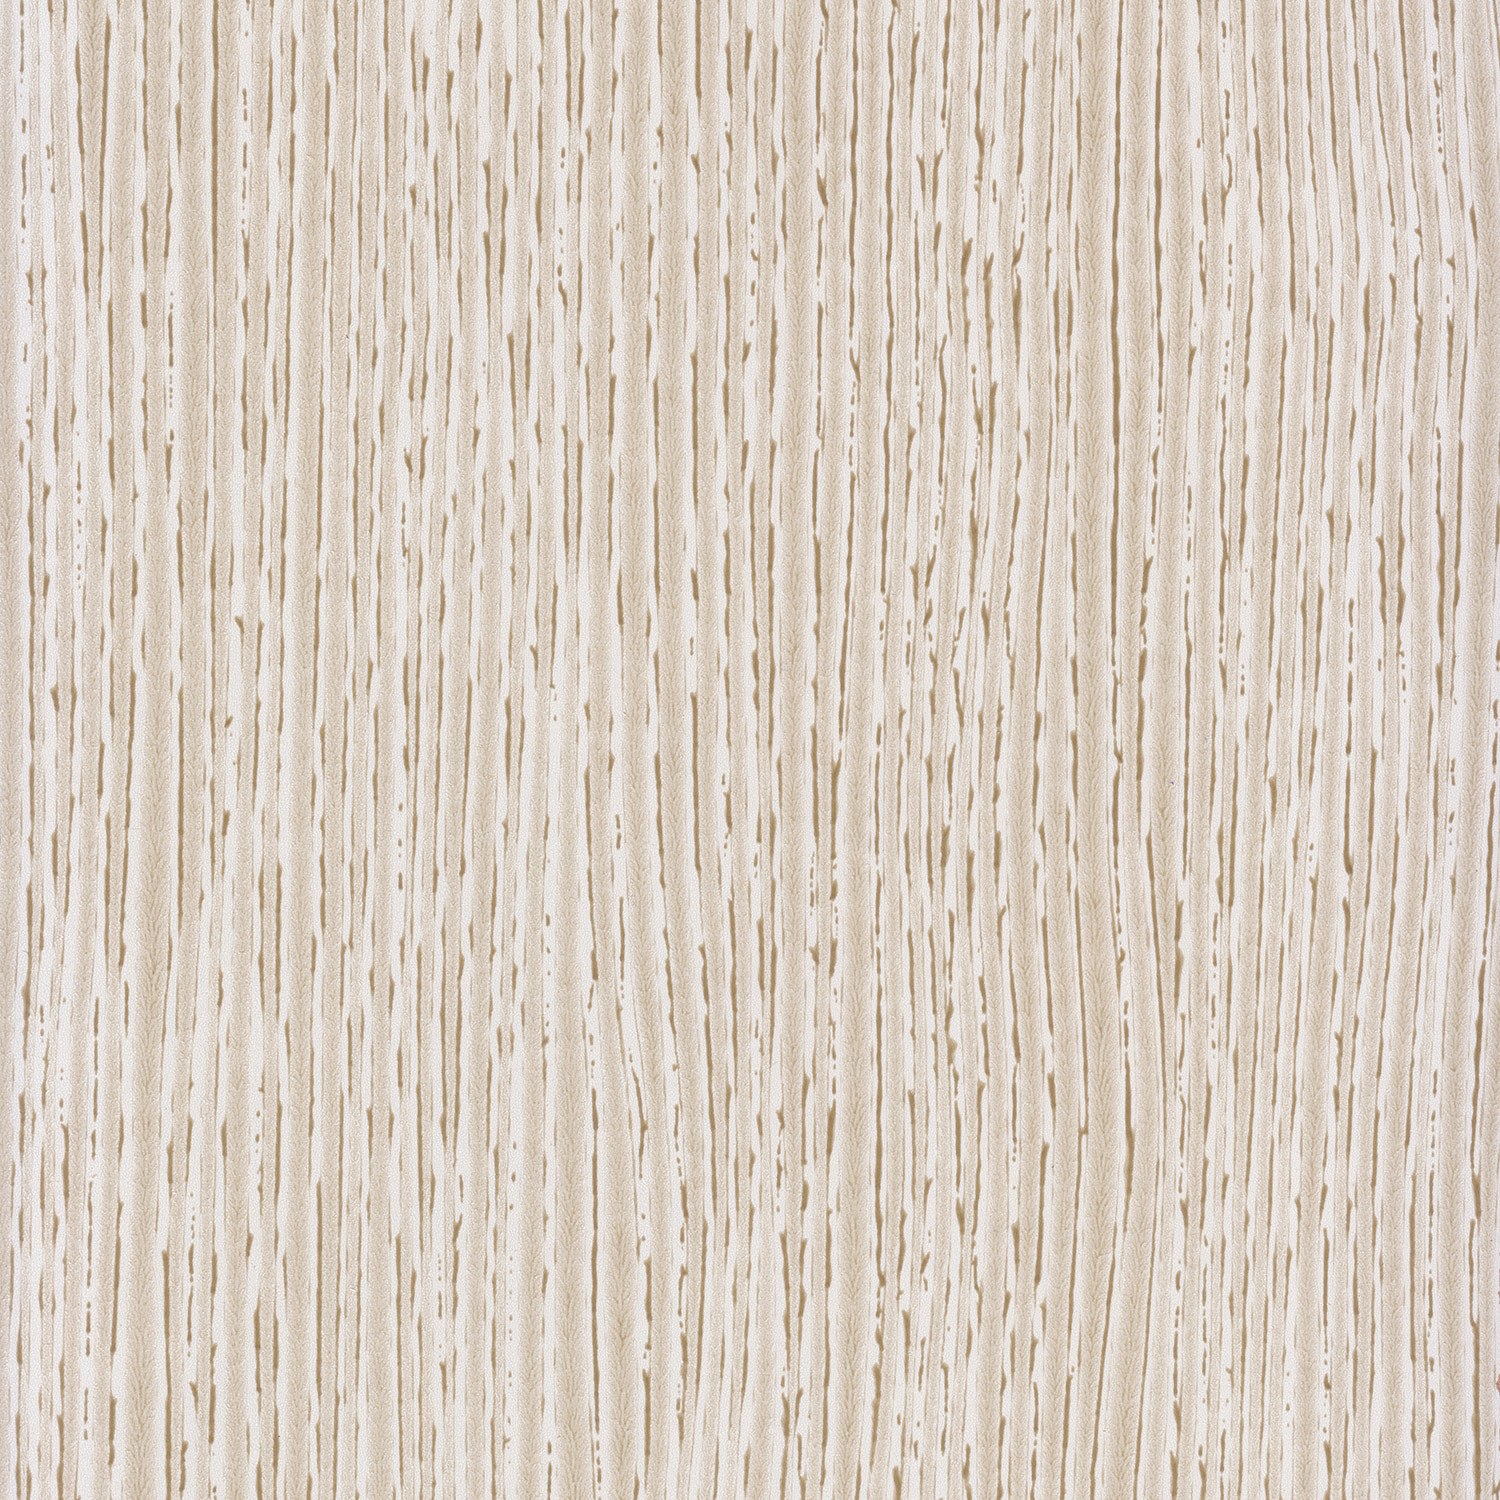 3D Painted Fiberboard White / Golden 30